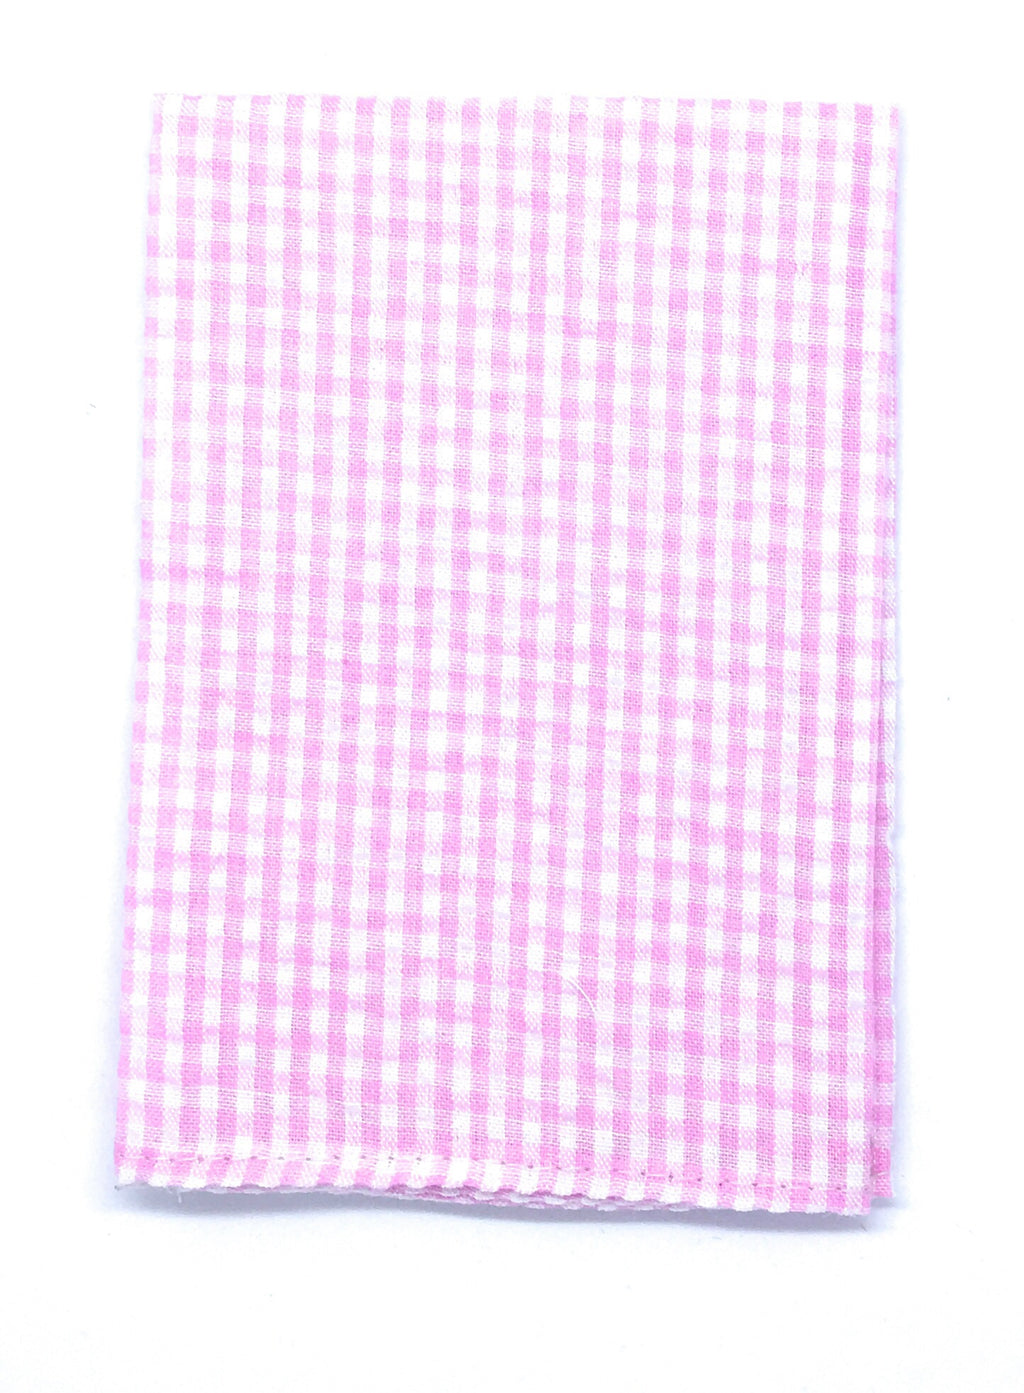 GINGHAM PLAID SEERSUCKER POCKETSQUARE